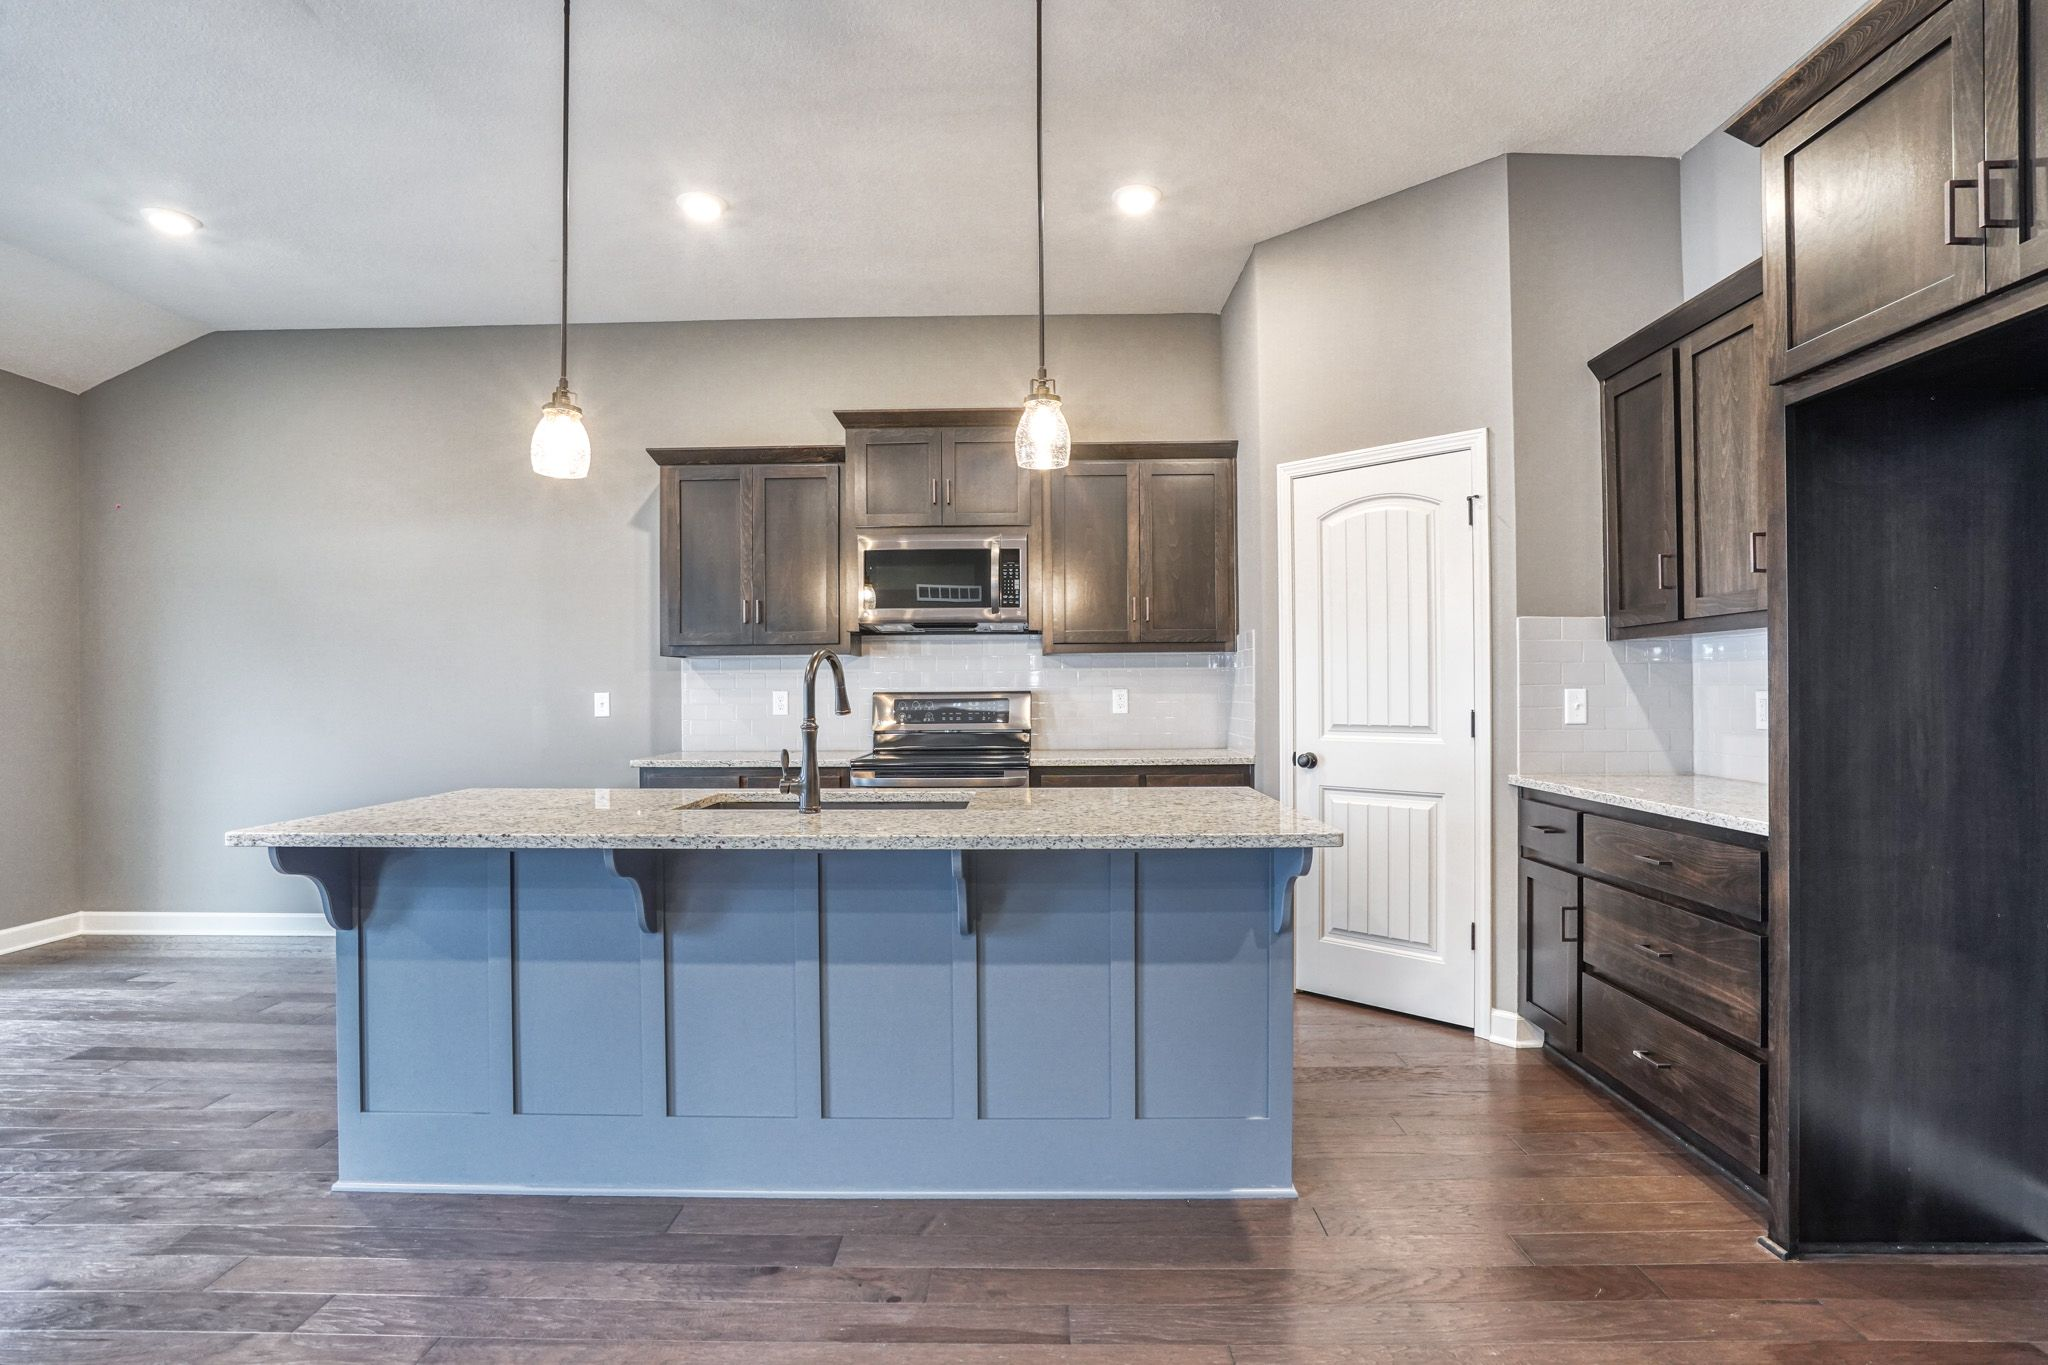 Kitchen featured in the Westport - IA By Summit Homes in Des Moines, IA